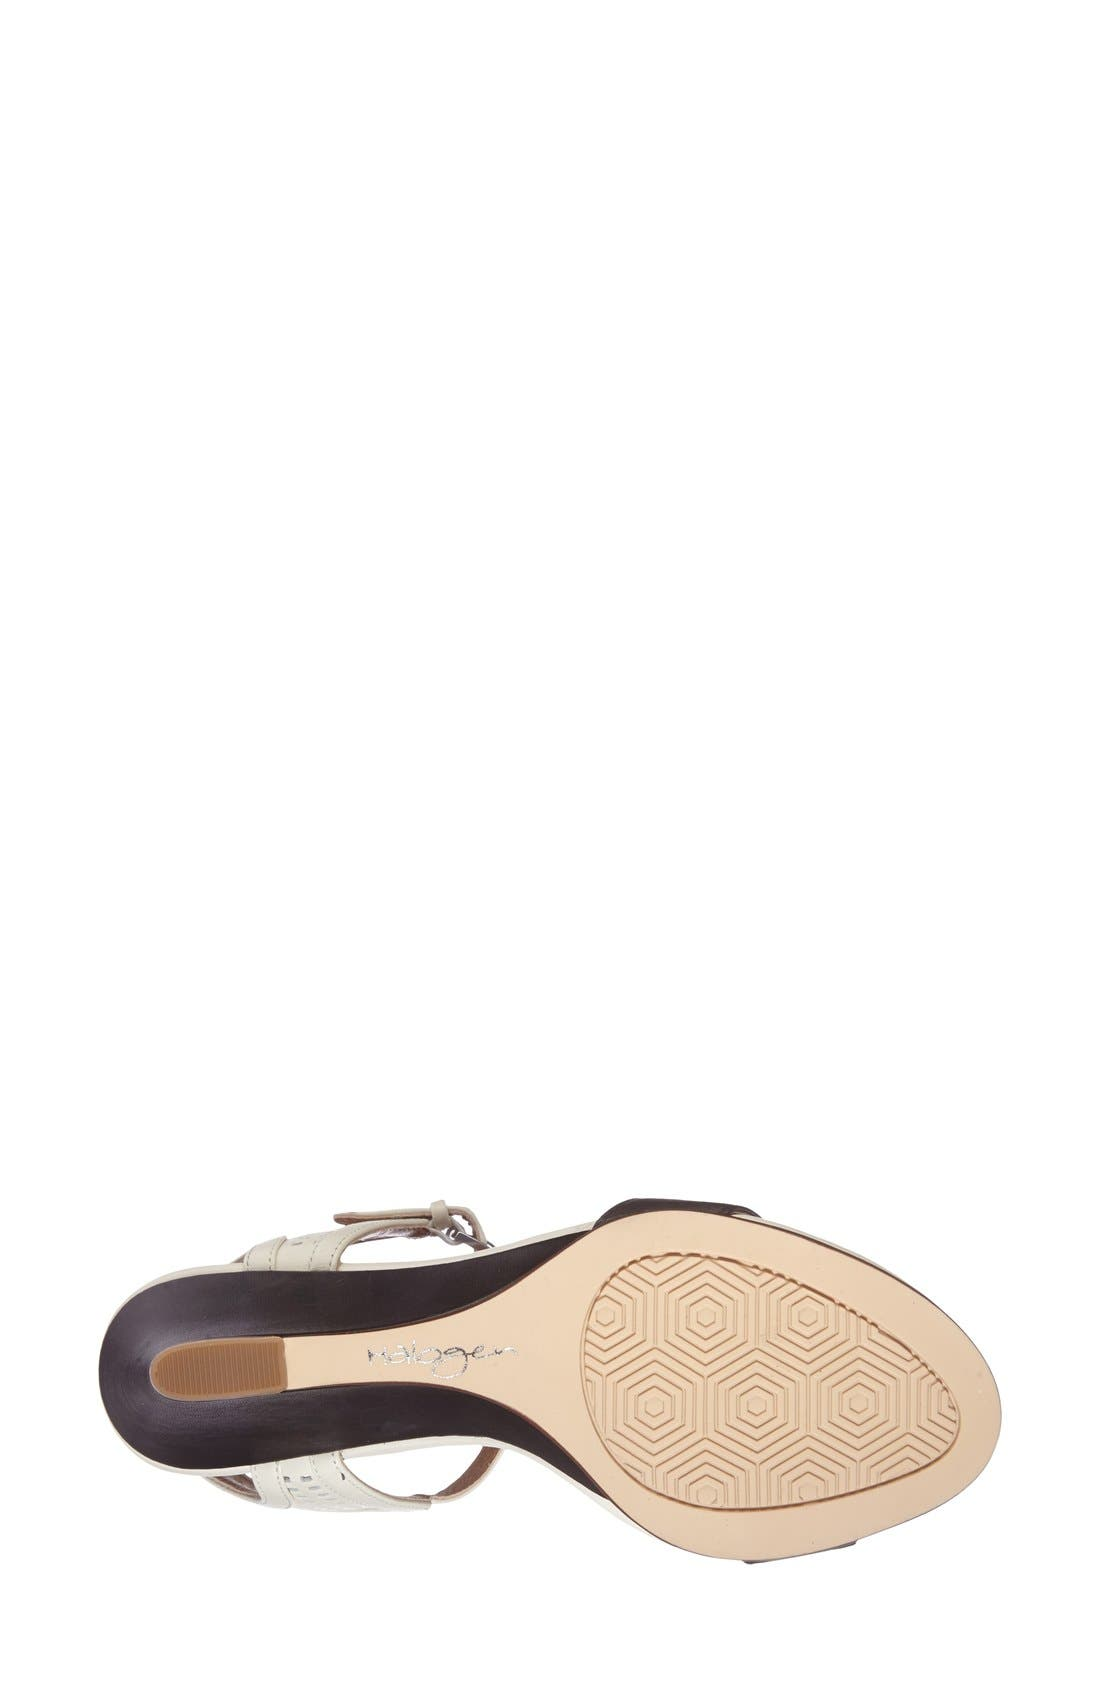 Alternate Image 4  - Halogen 'Helen' Perforated Leather Ankle Strap Wedge Sandal (Women)